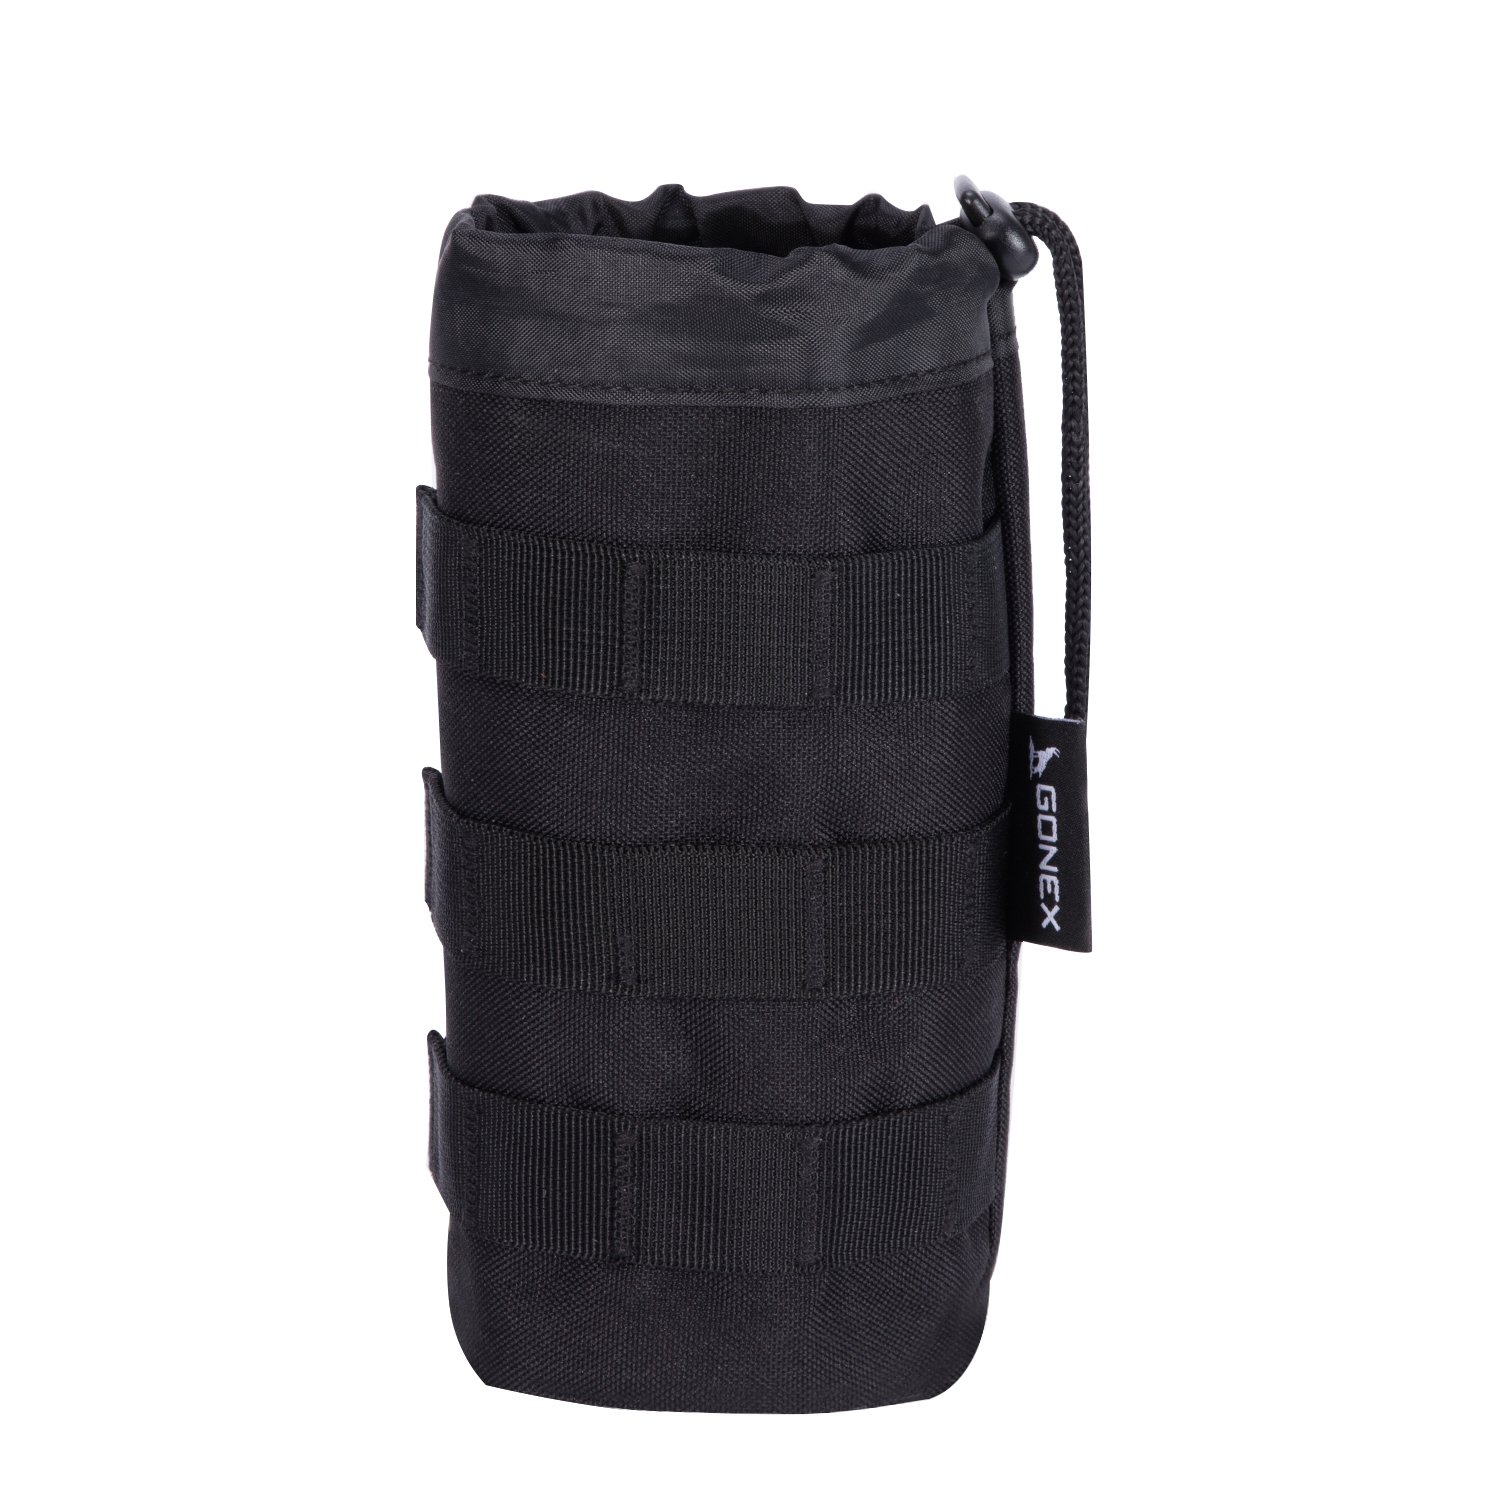 Gonex Tactical Molle Water Bottle Pouch H2O Hydration Carrier (Black)